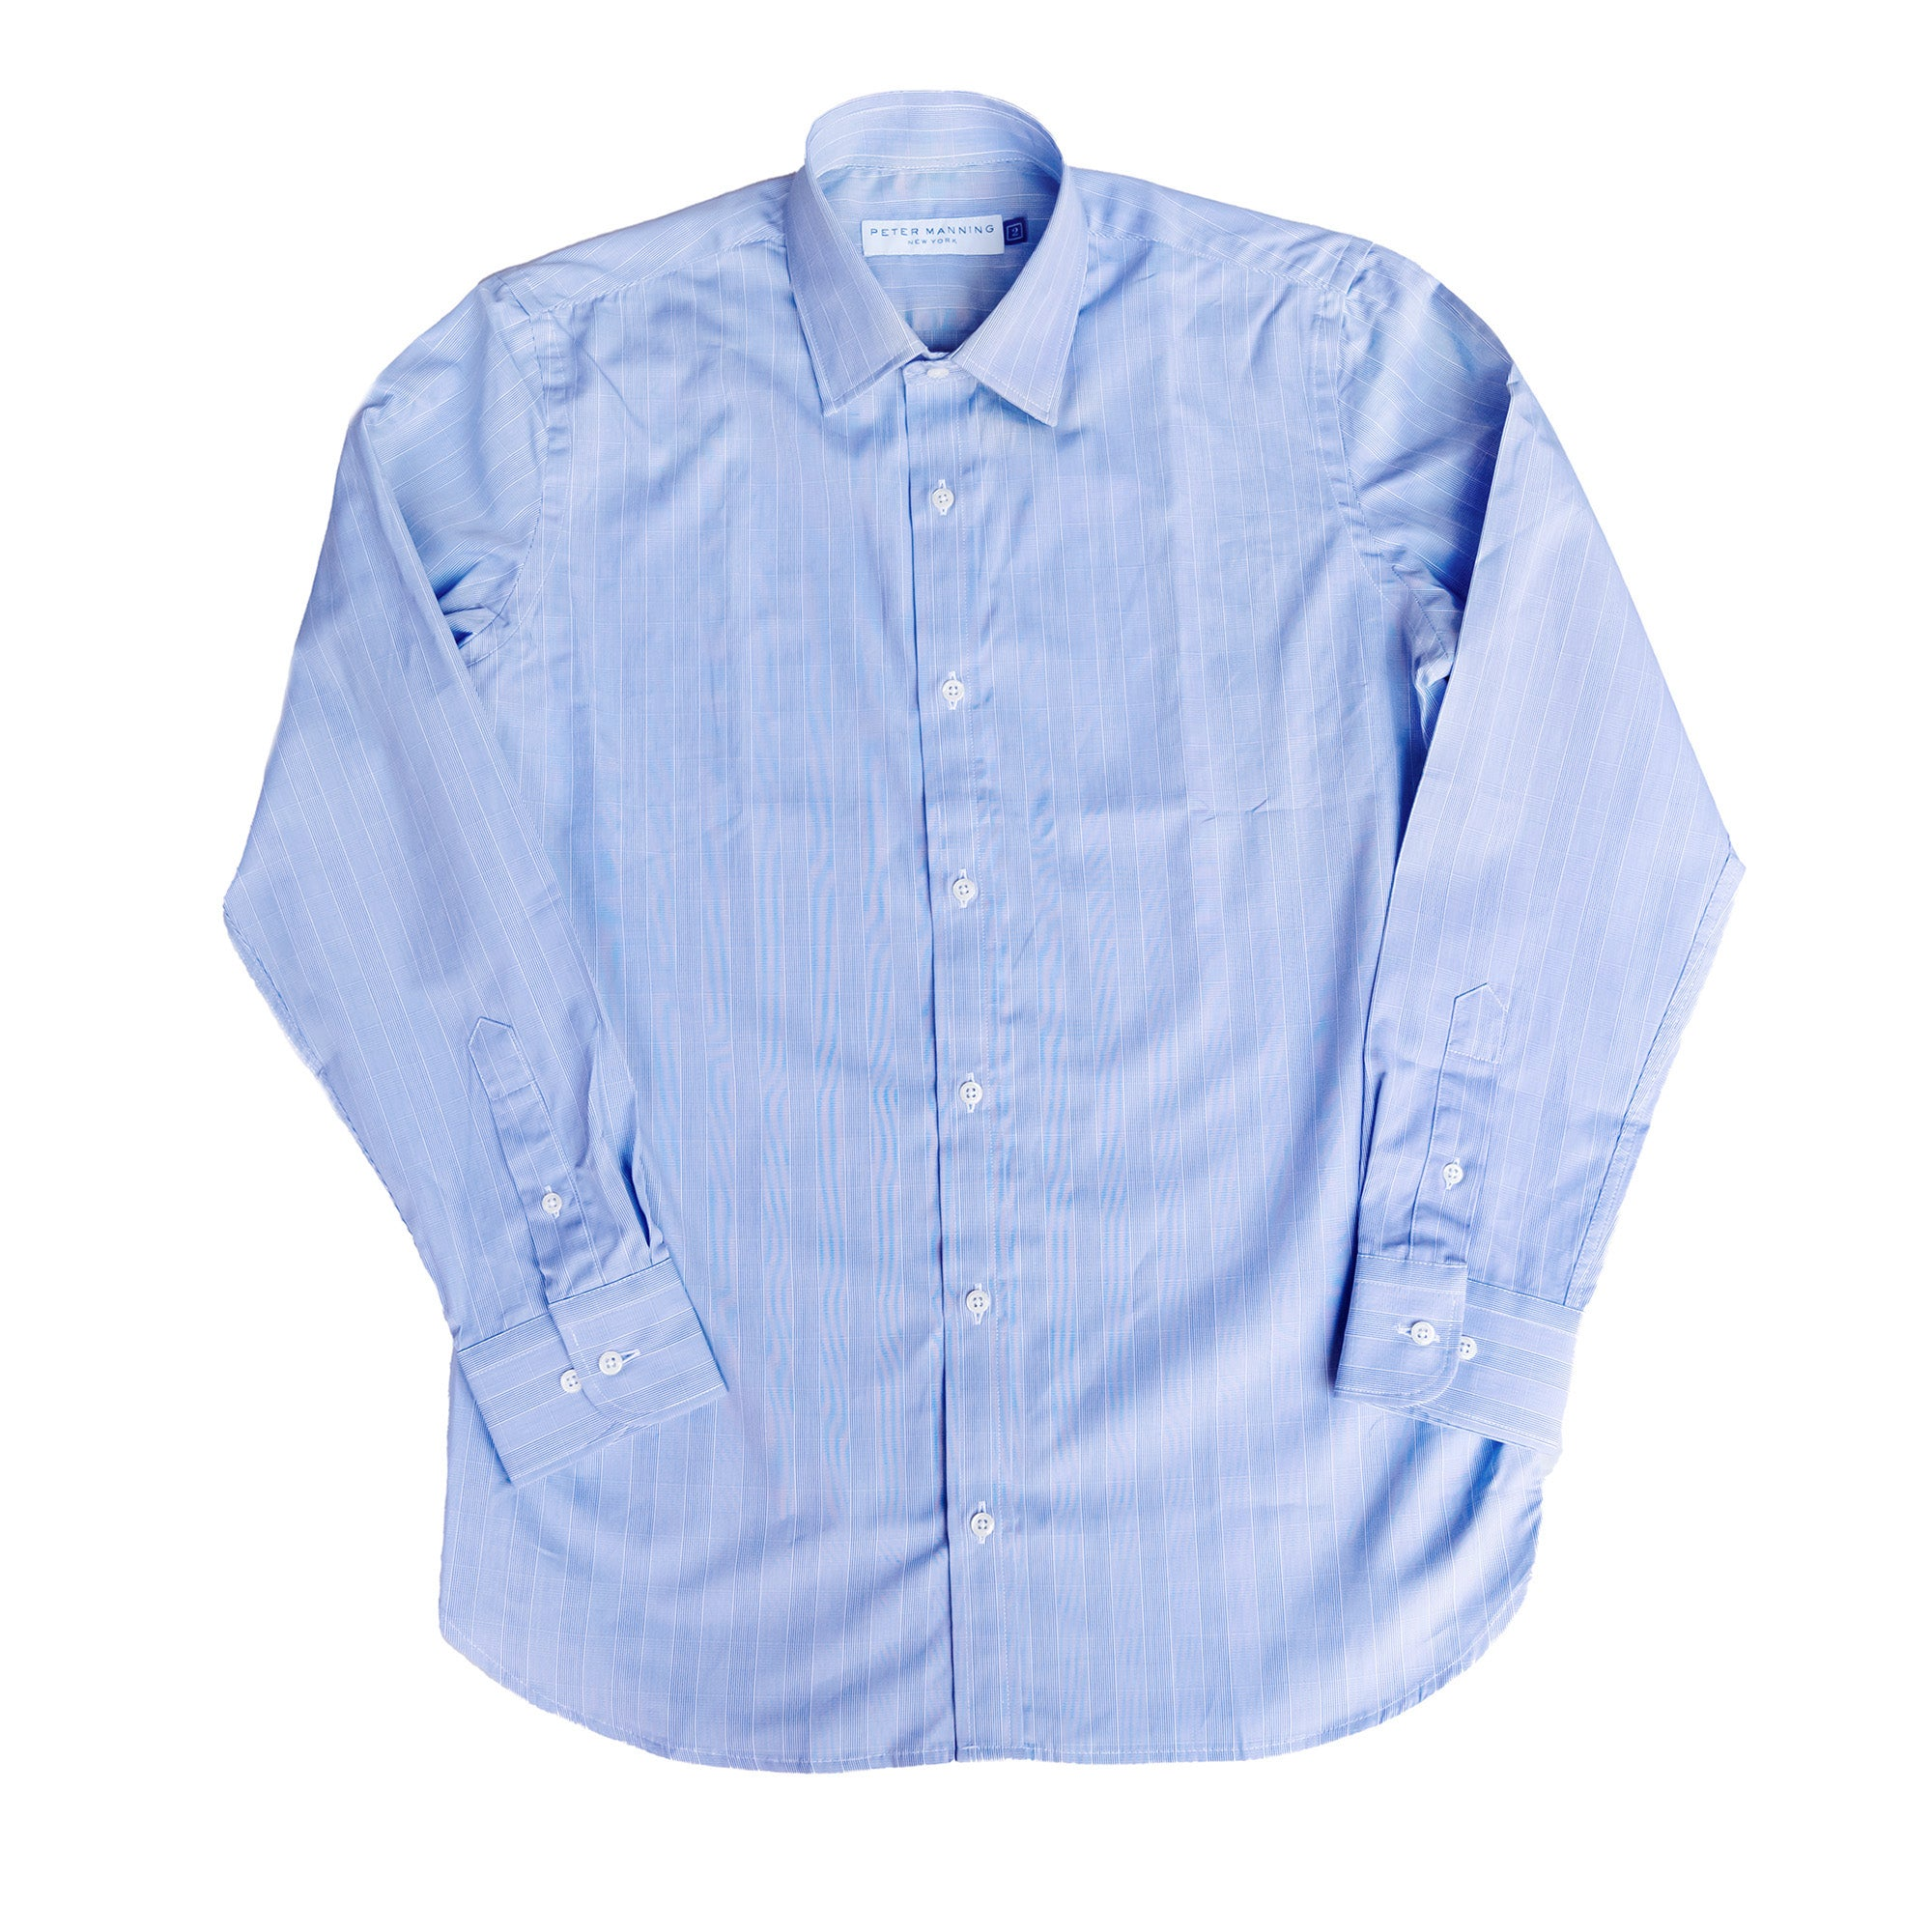 Premium Dress Shirt Standard Fit - Blue Plaid